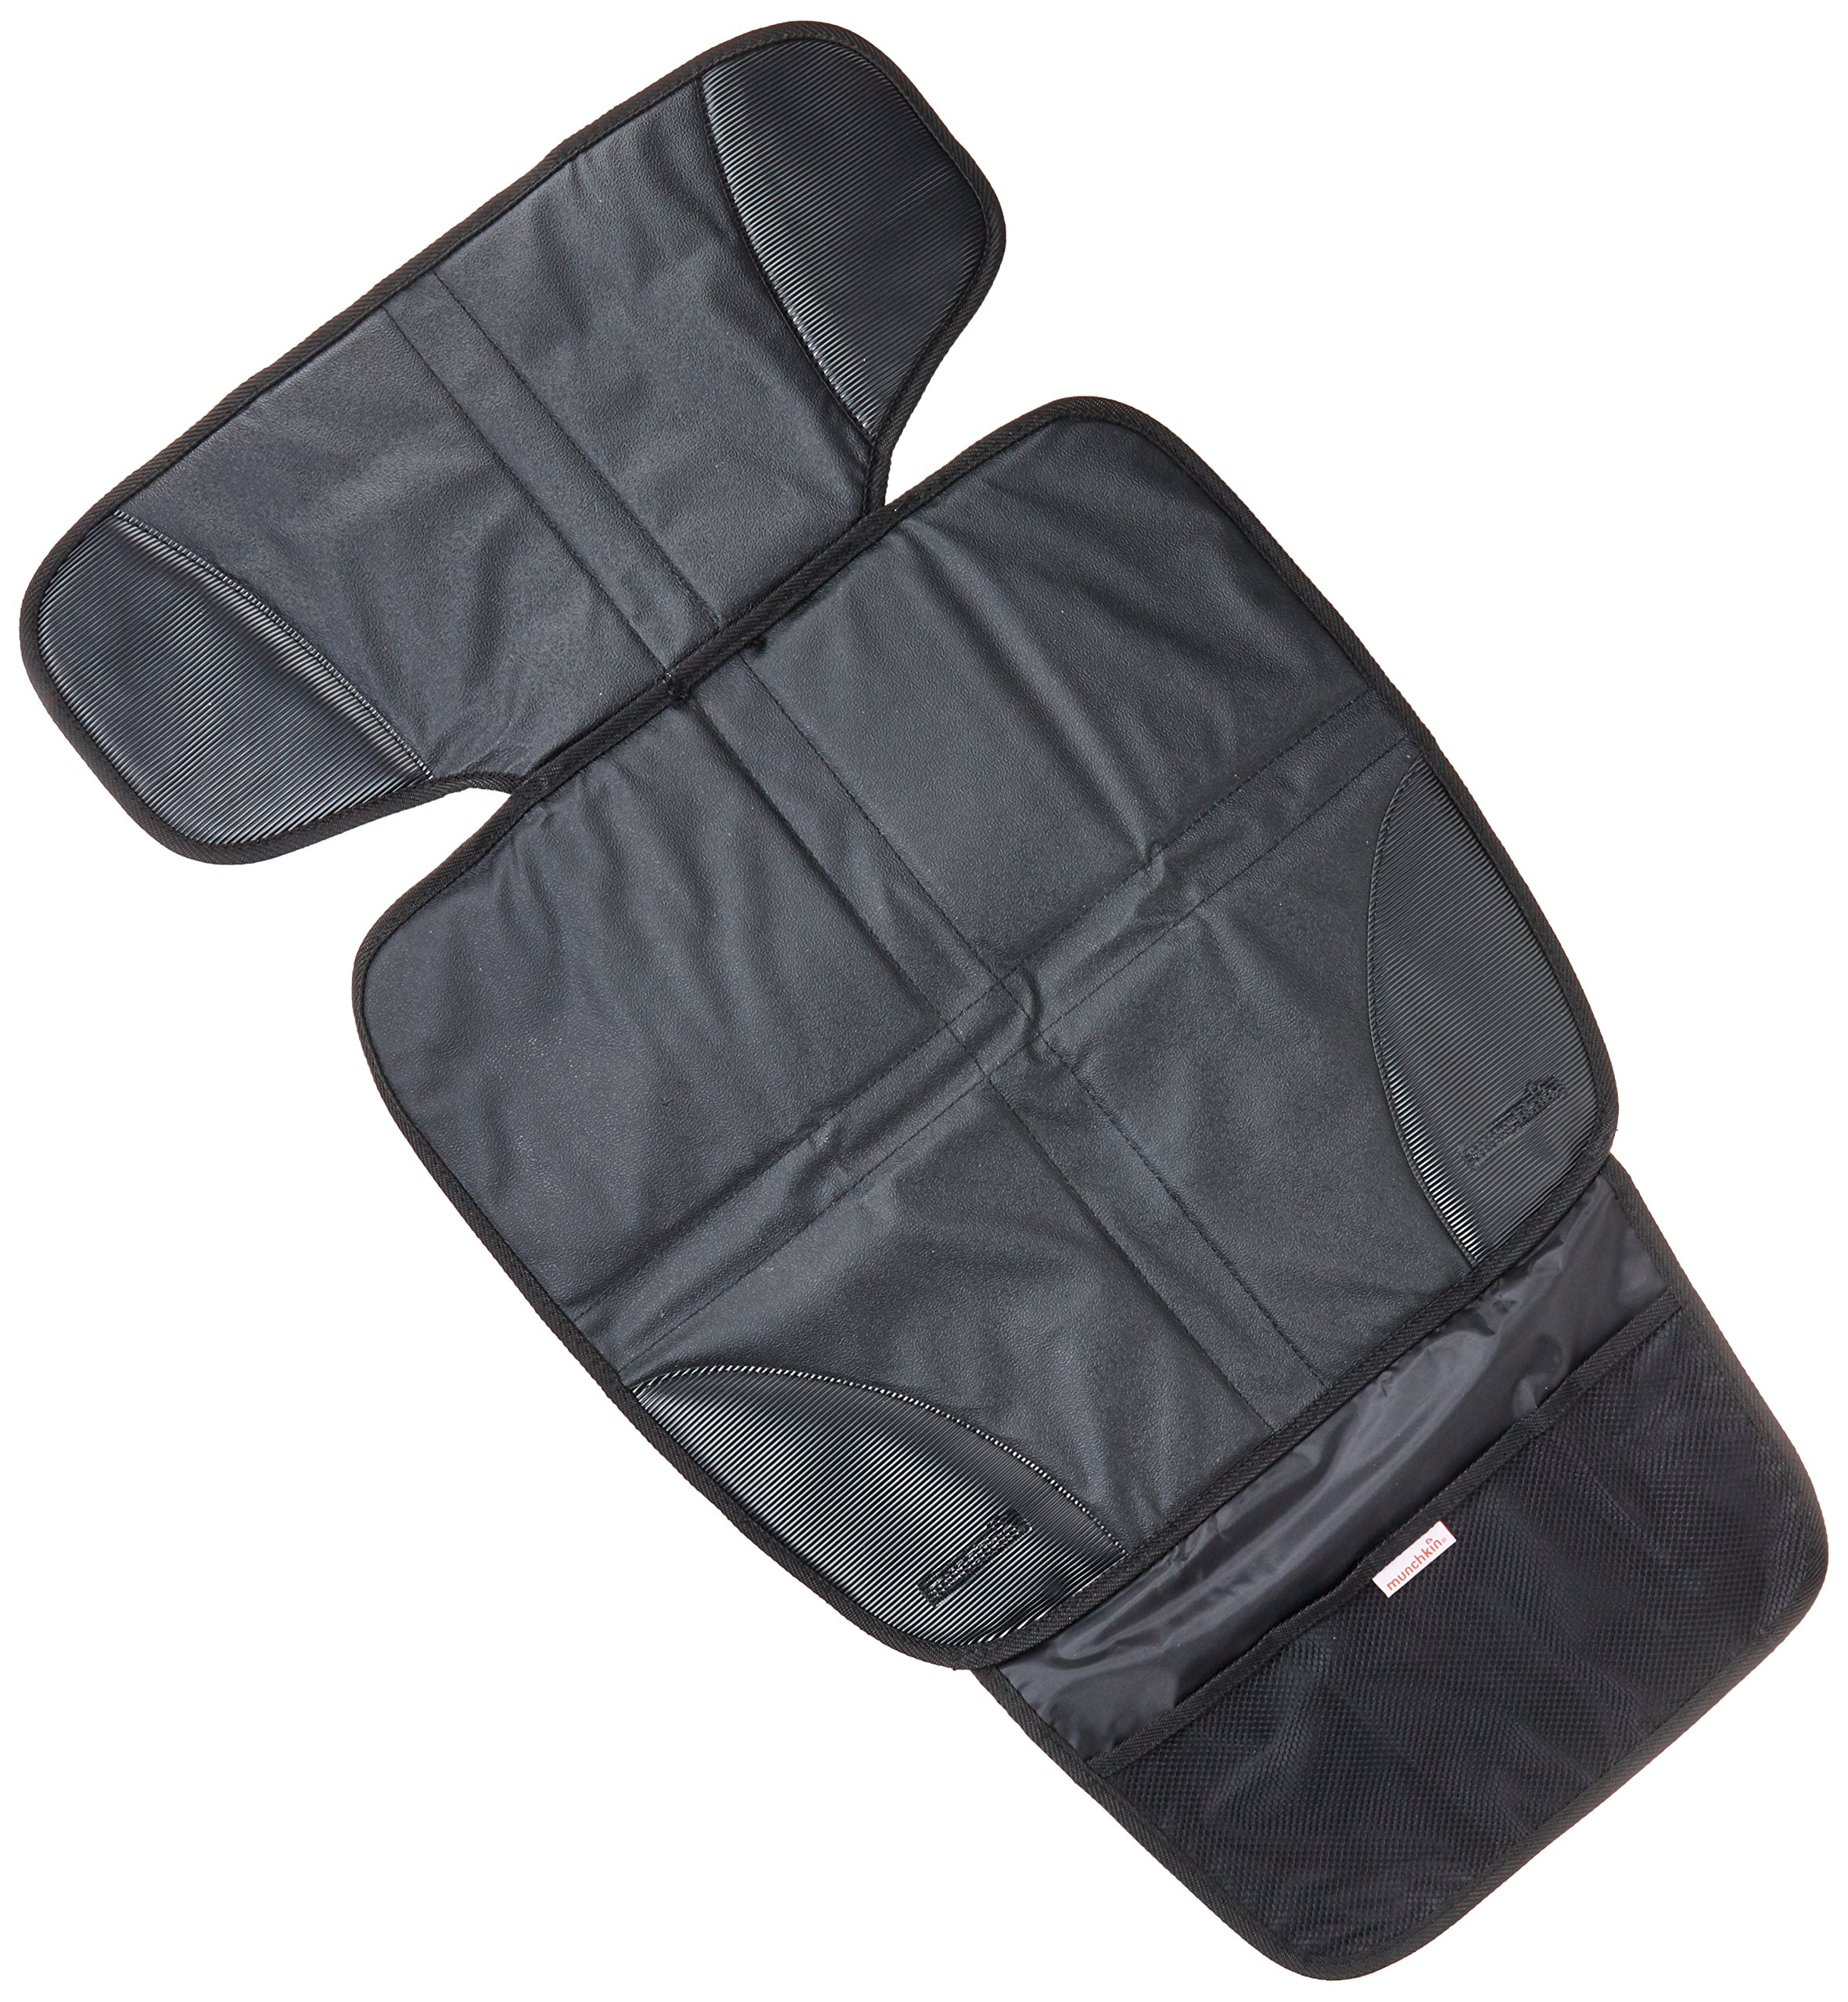 Munchkin Auto Seat Protector, 1 Count by Munchkin (Image #2)